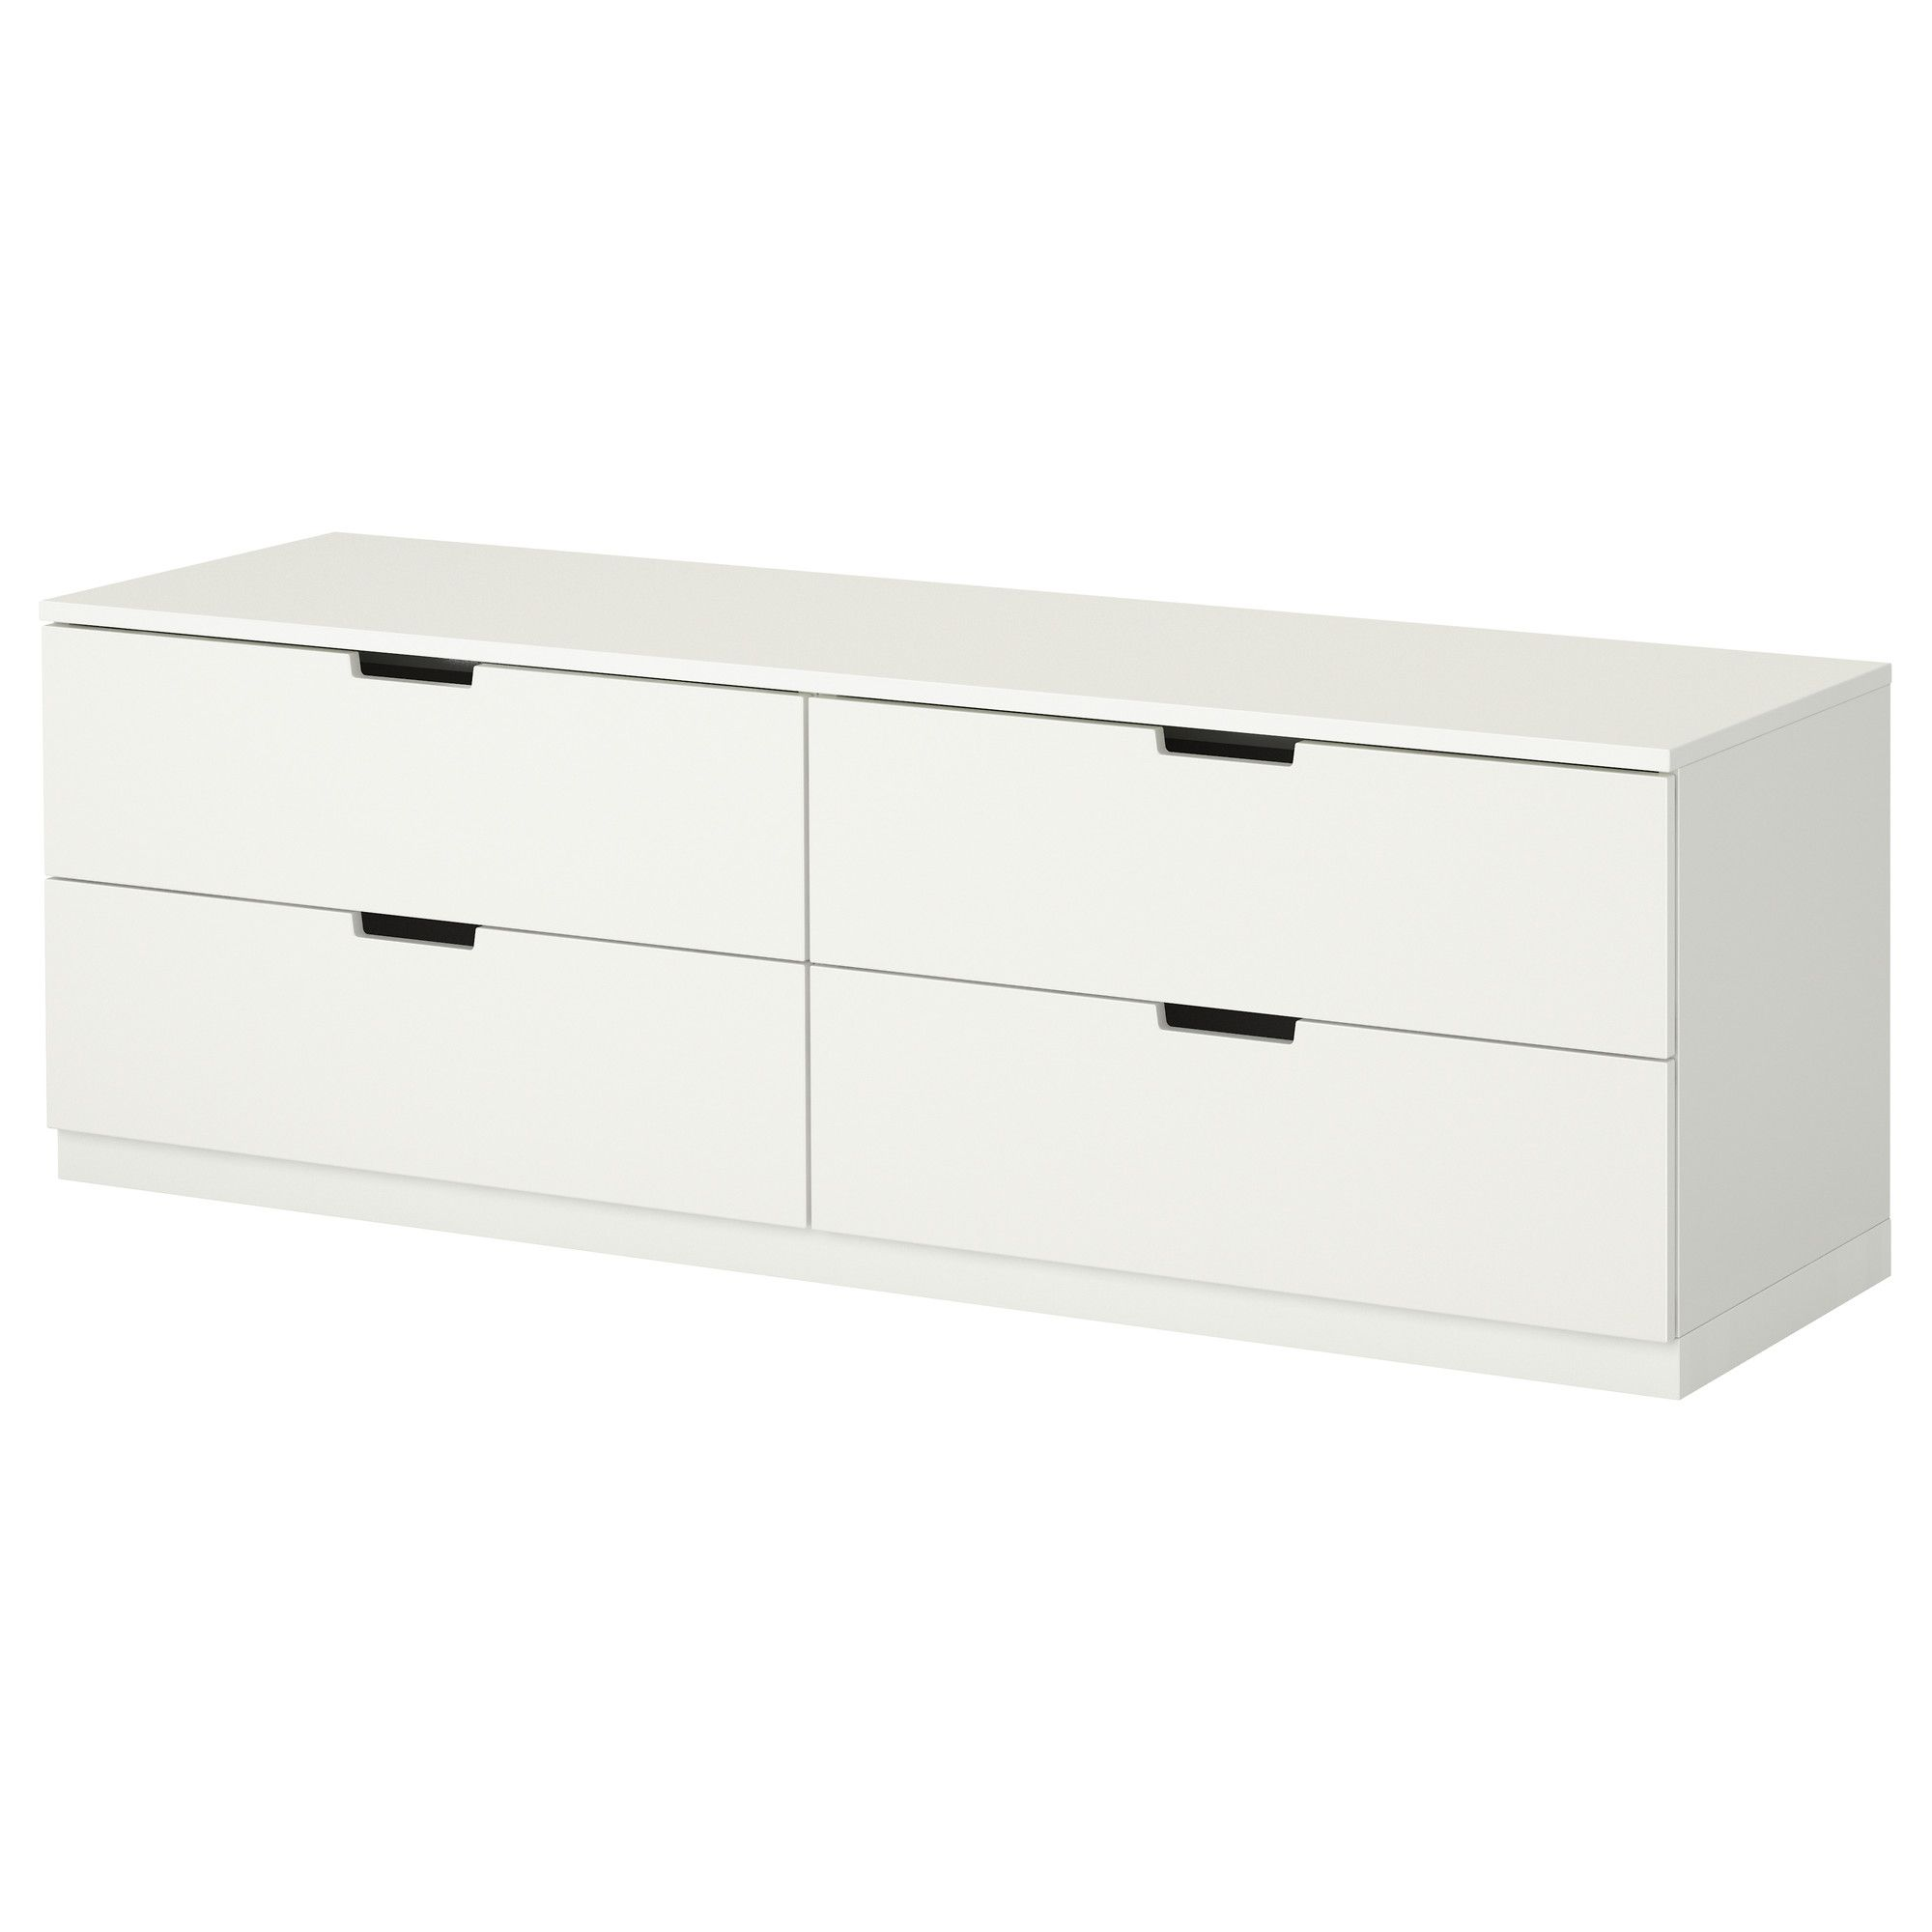 Ikea Nordli 4 Drawer Dresser You Can Use One Modular Chest  # Ikea Odda A Roulette